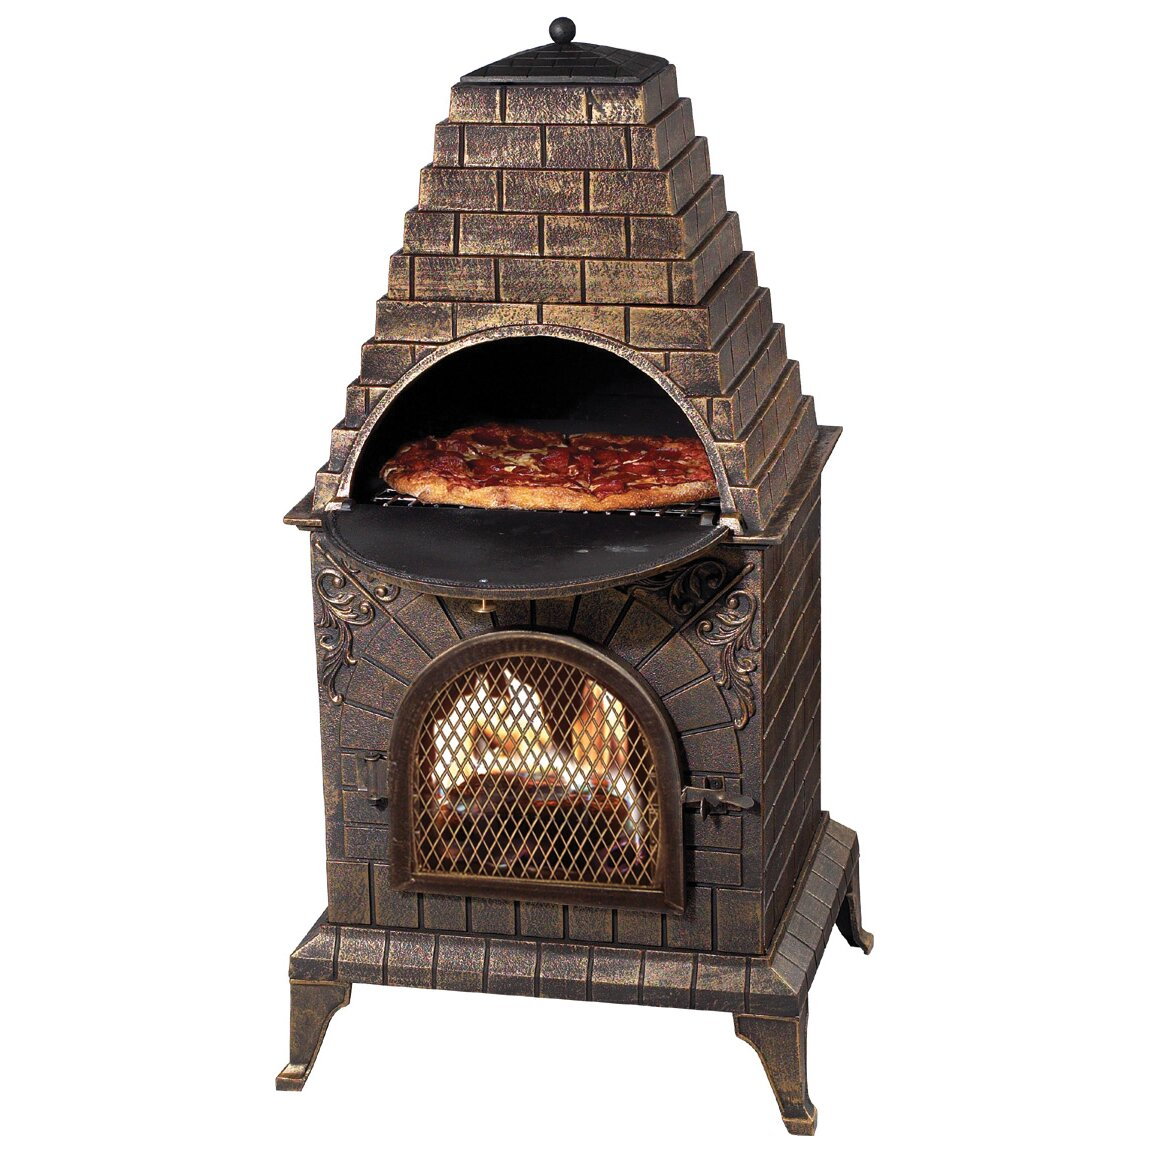 Outdoor Pizza Oven Fireplace Chiminea Wood Burning Bbq